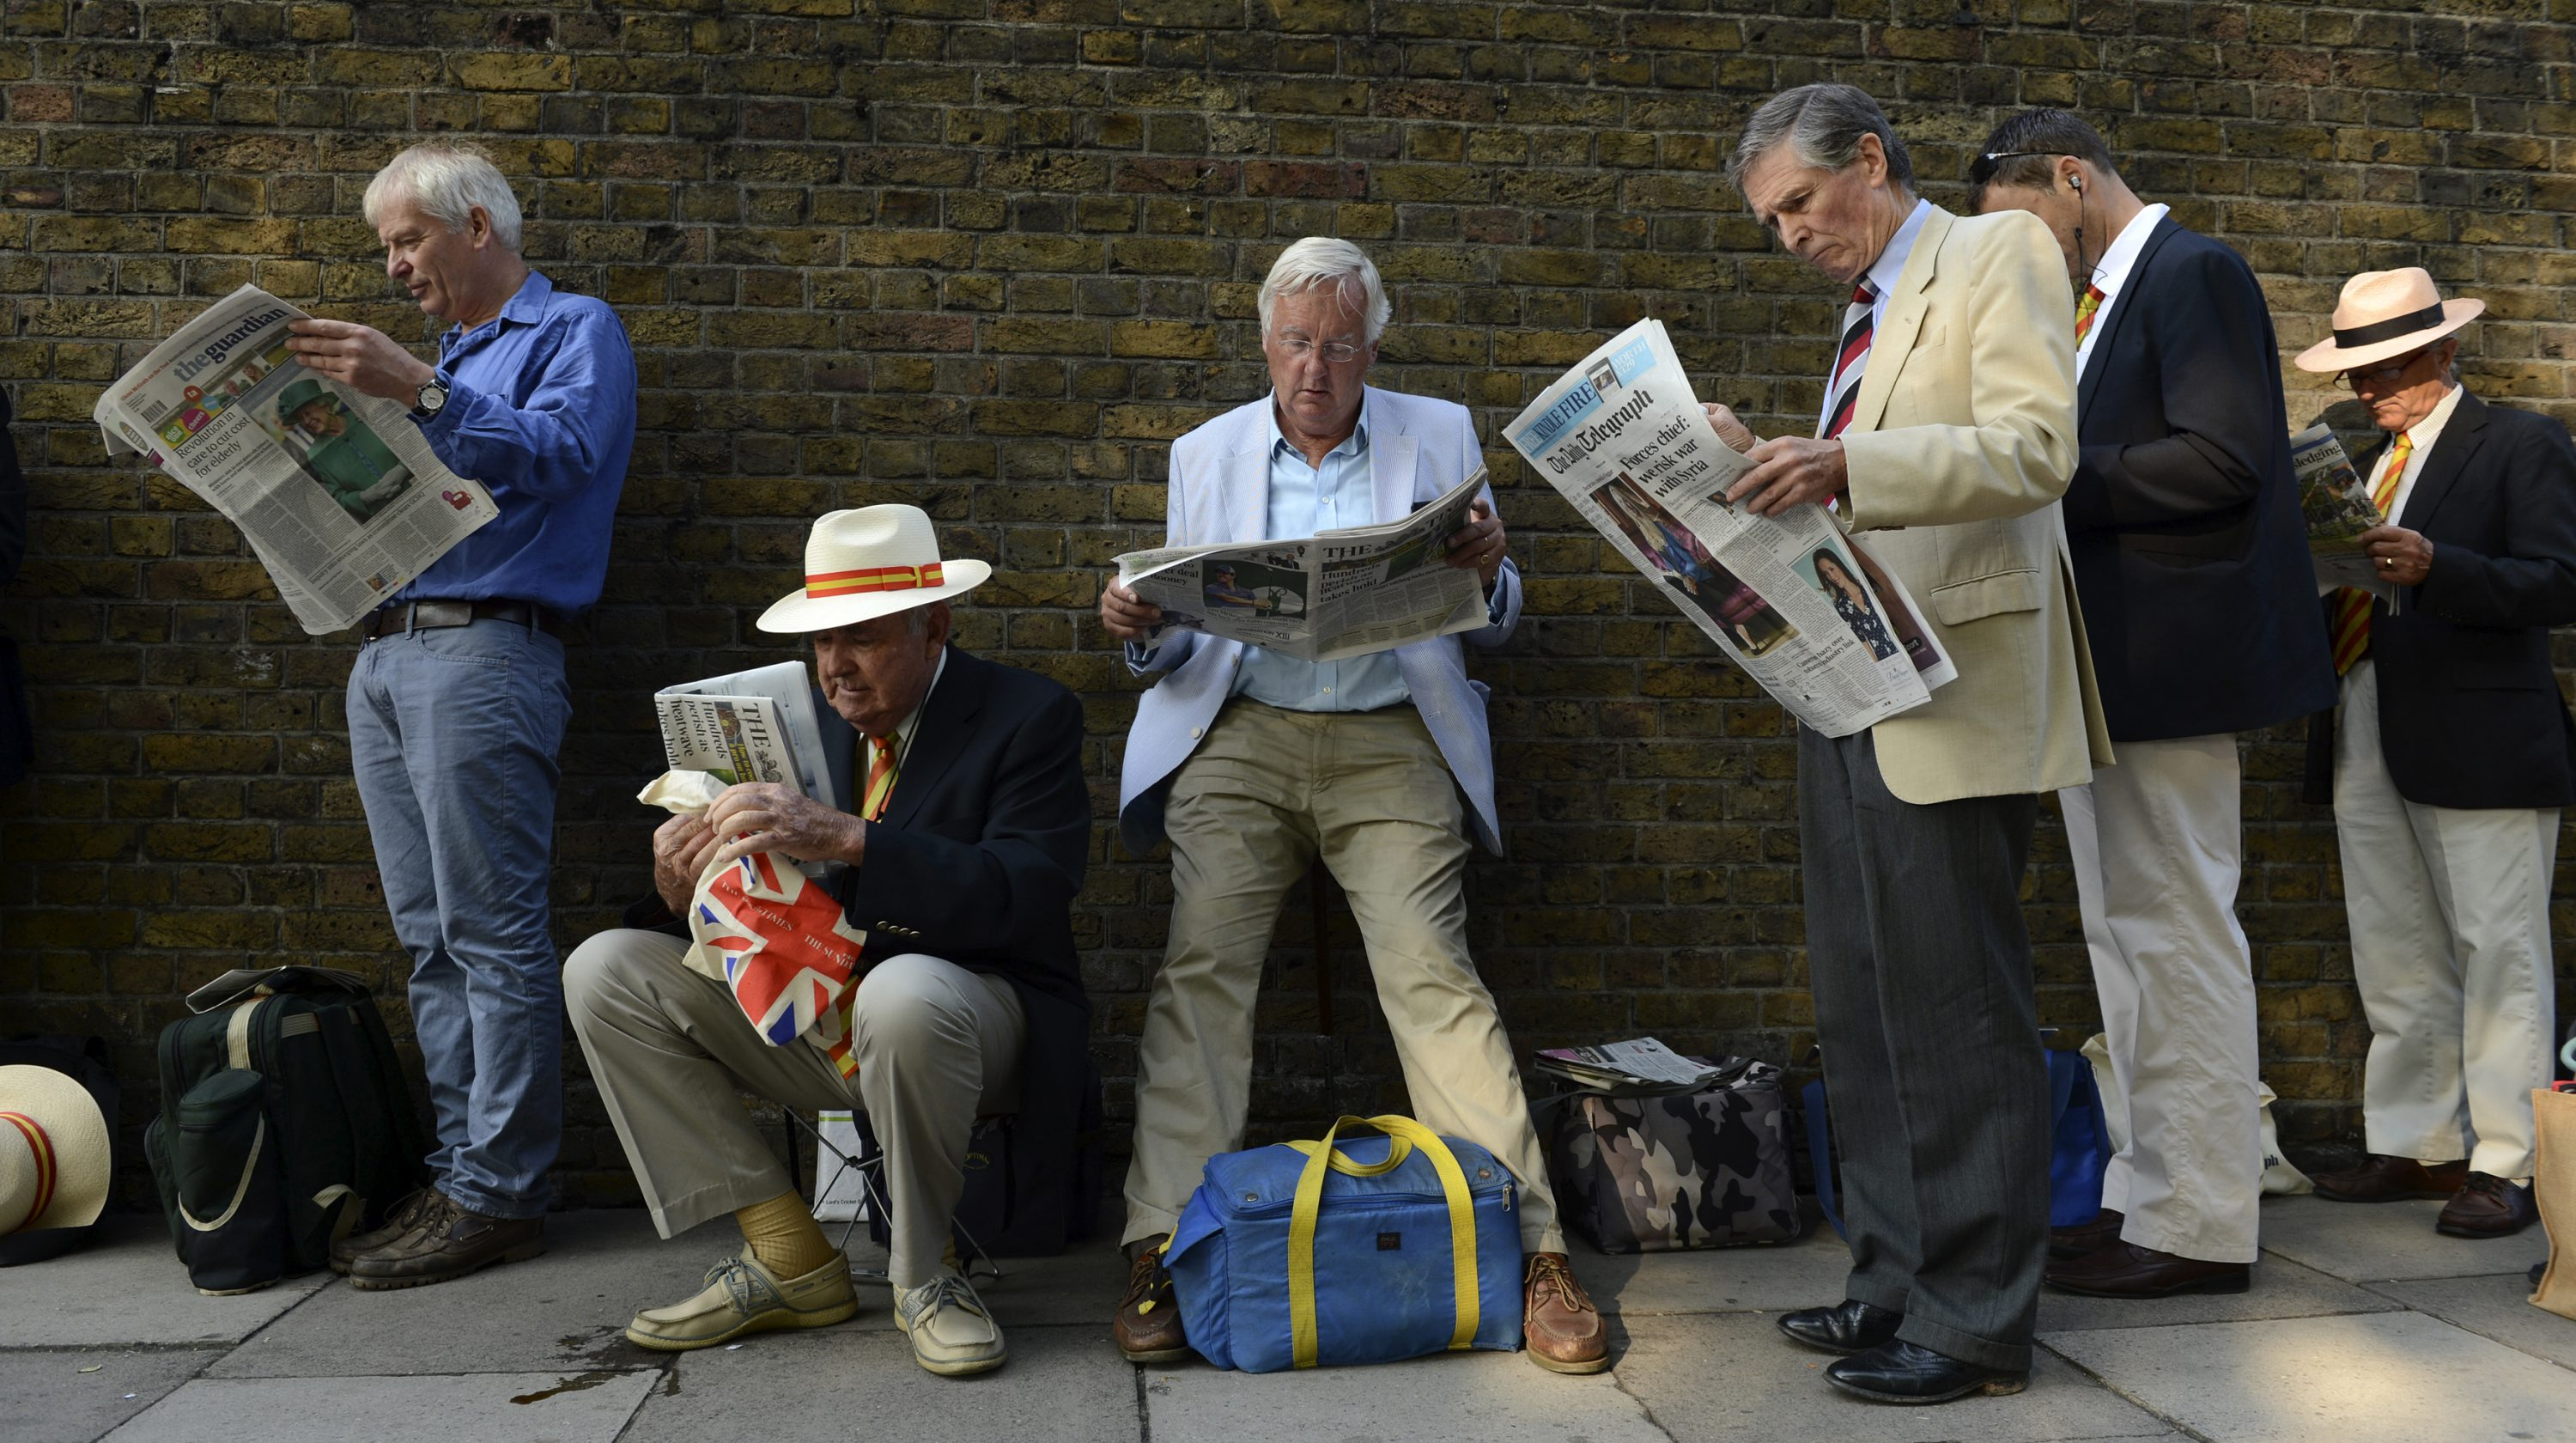 men reading the newspaper